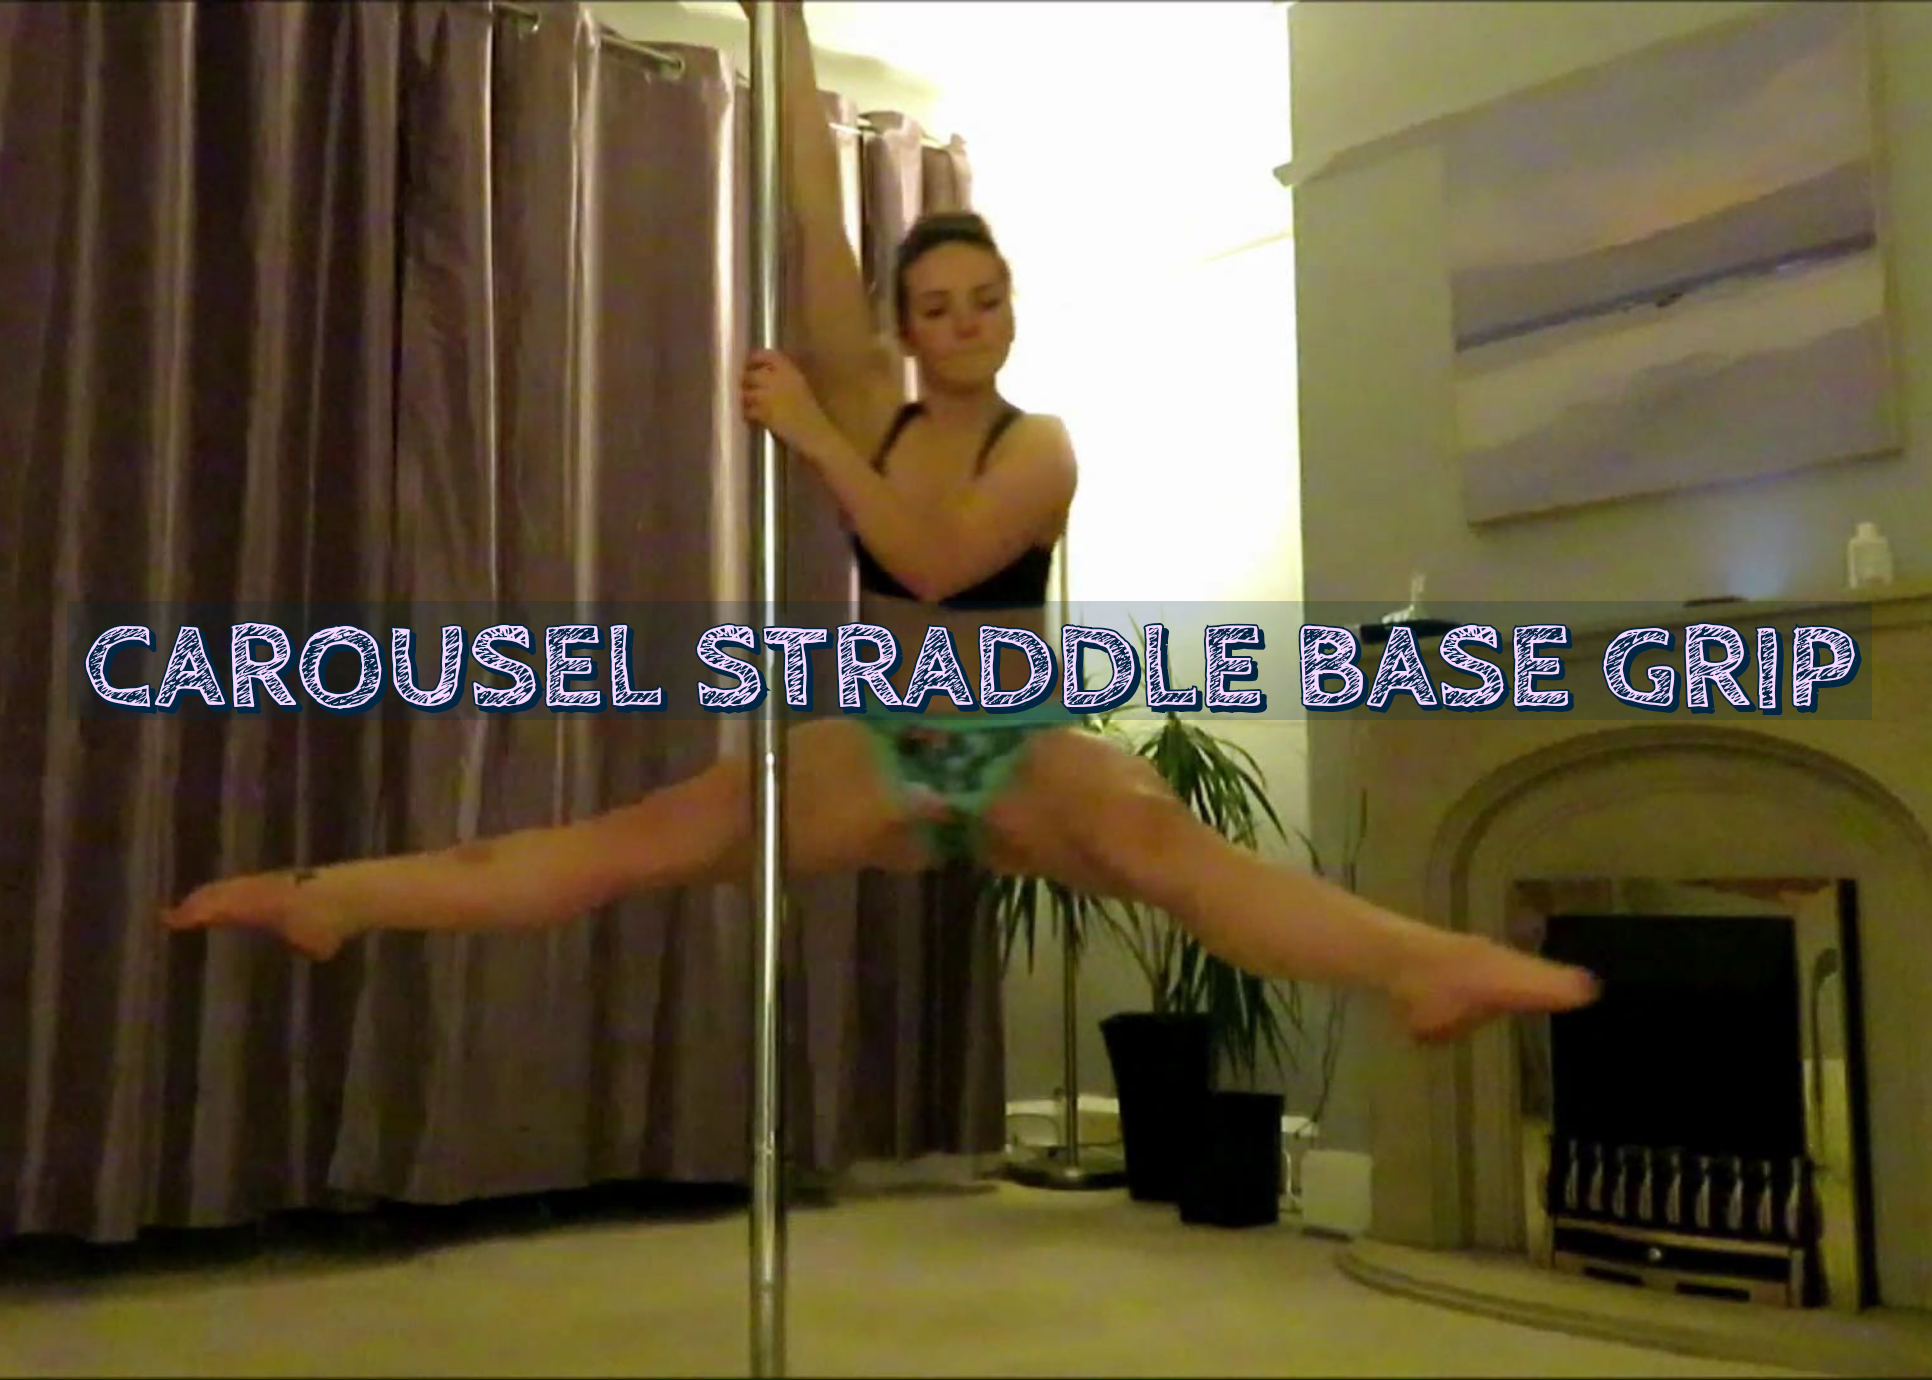 carousel straddle base grip